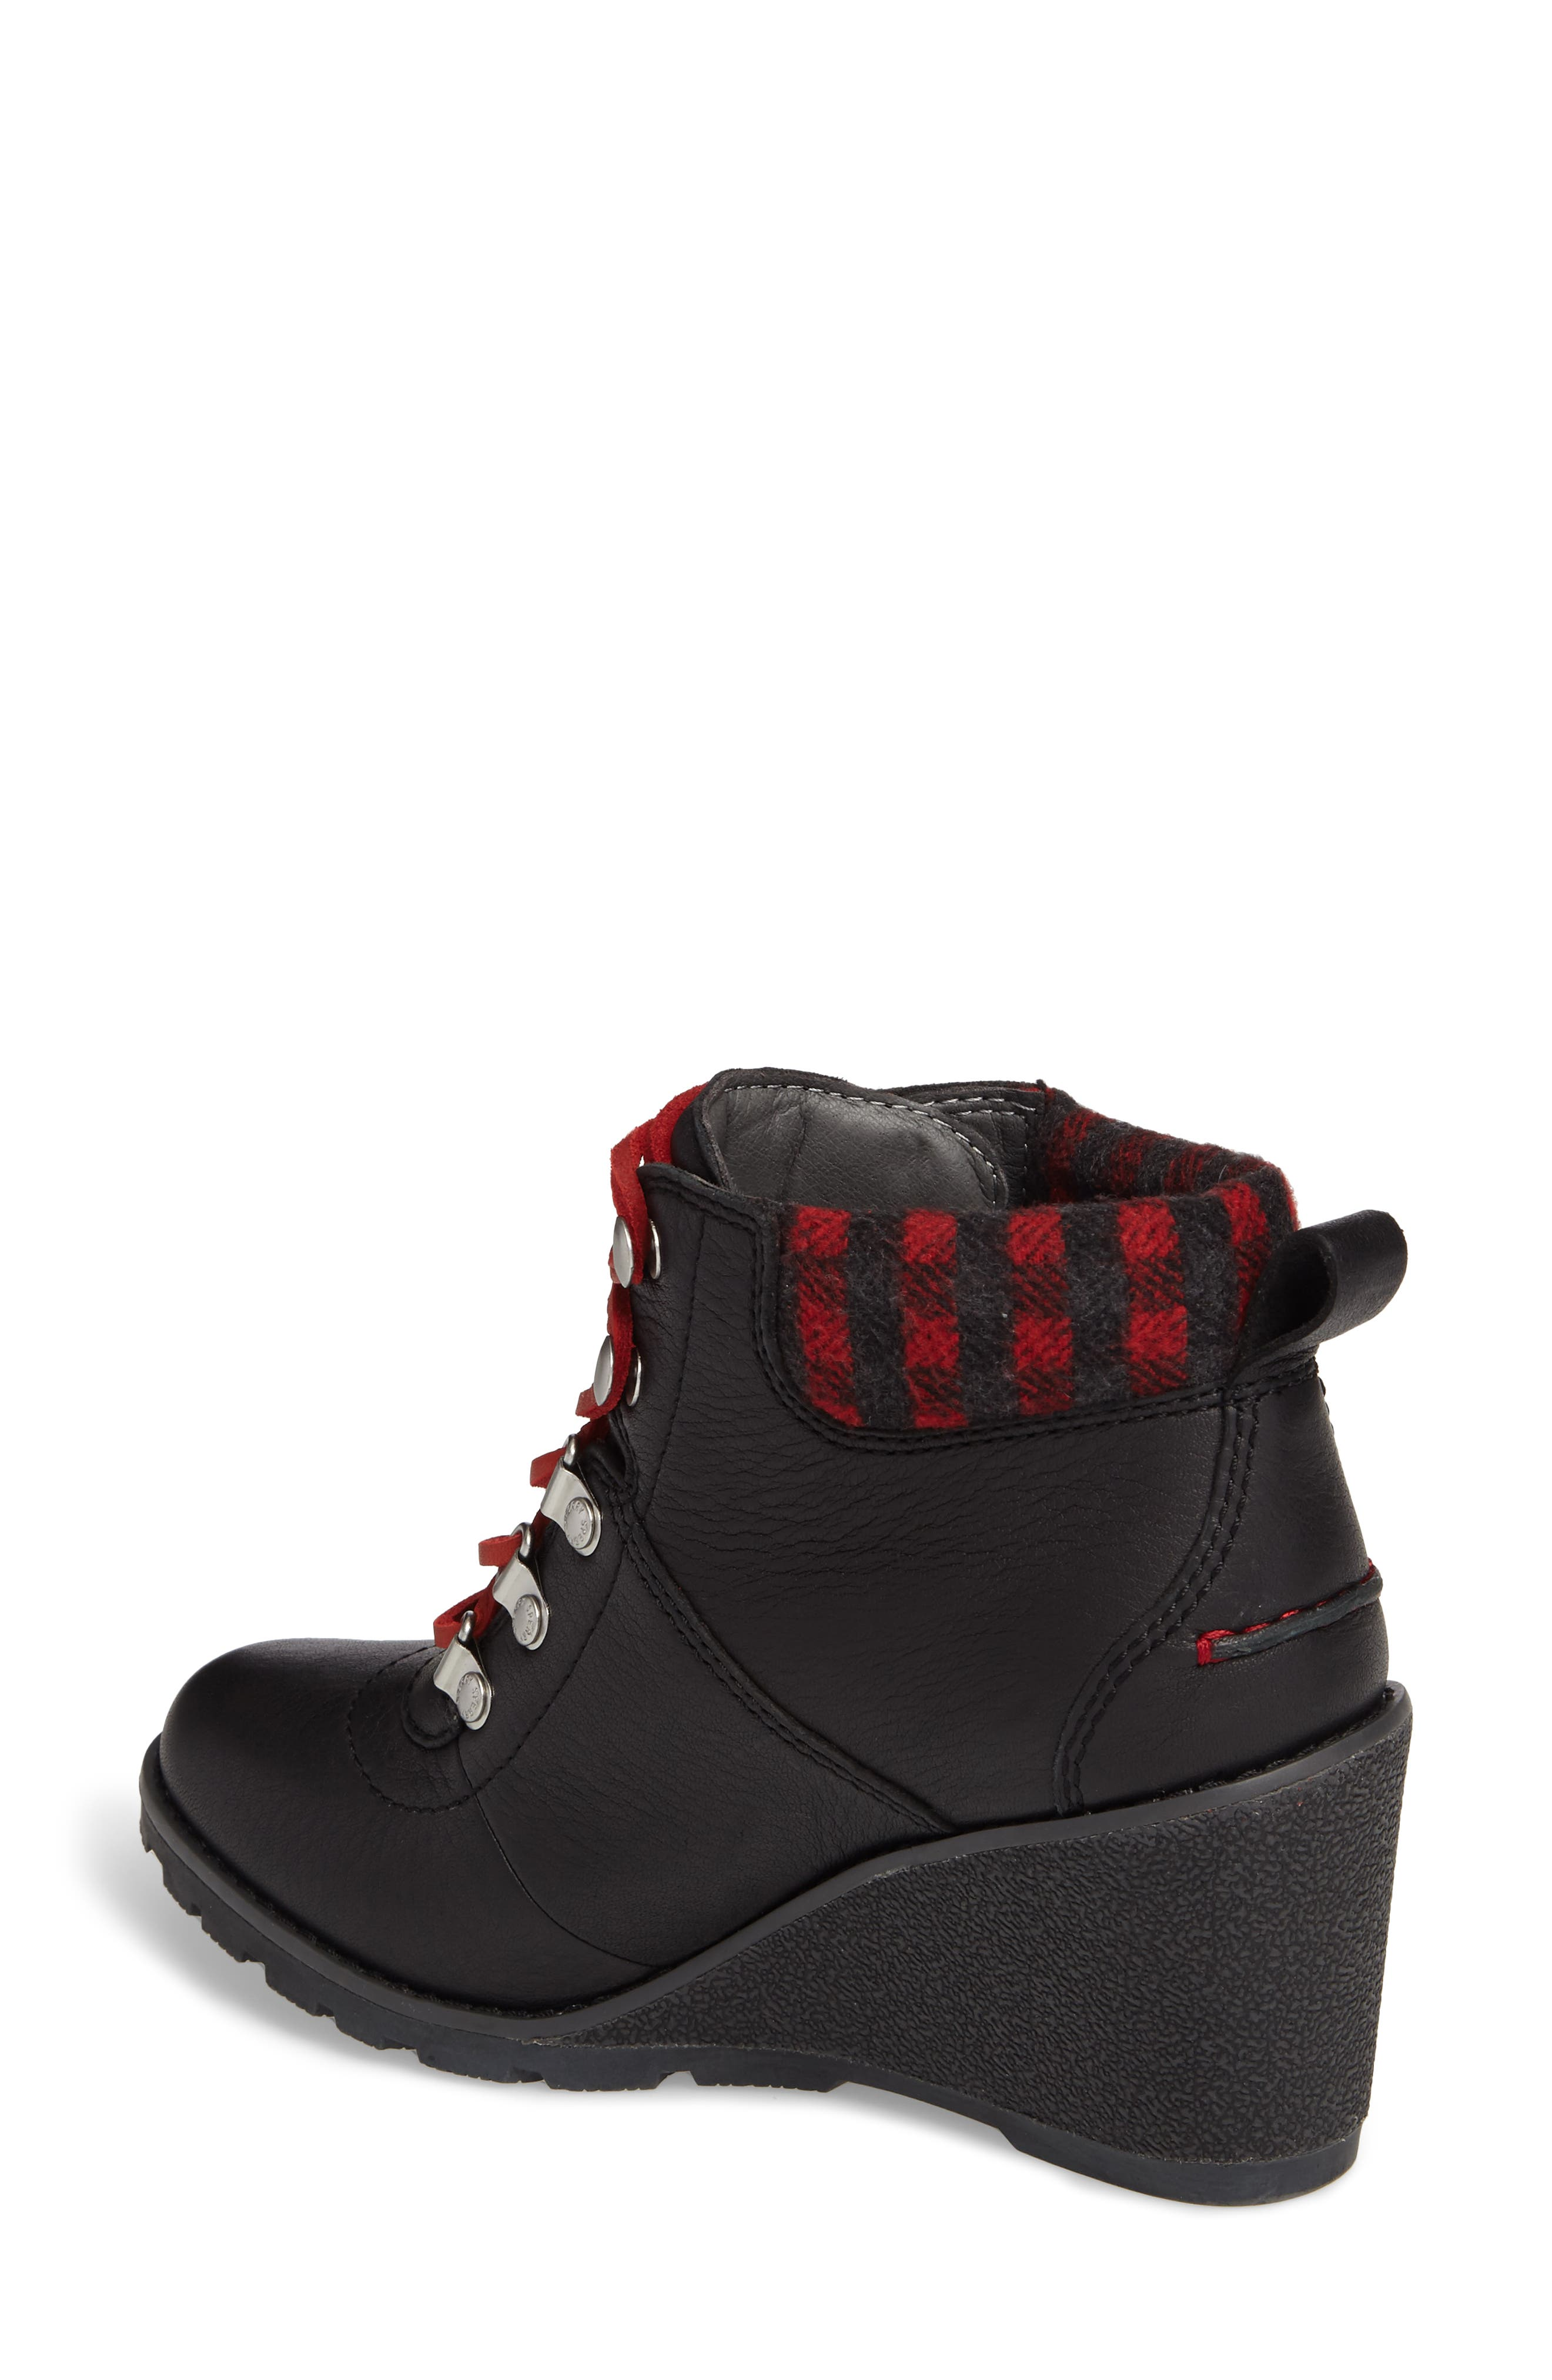 Top-Sider<sup>®</sup> Celeste Bliss Wedge Boot,                             Alternate thumbnail 2, color,                             Black Leather